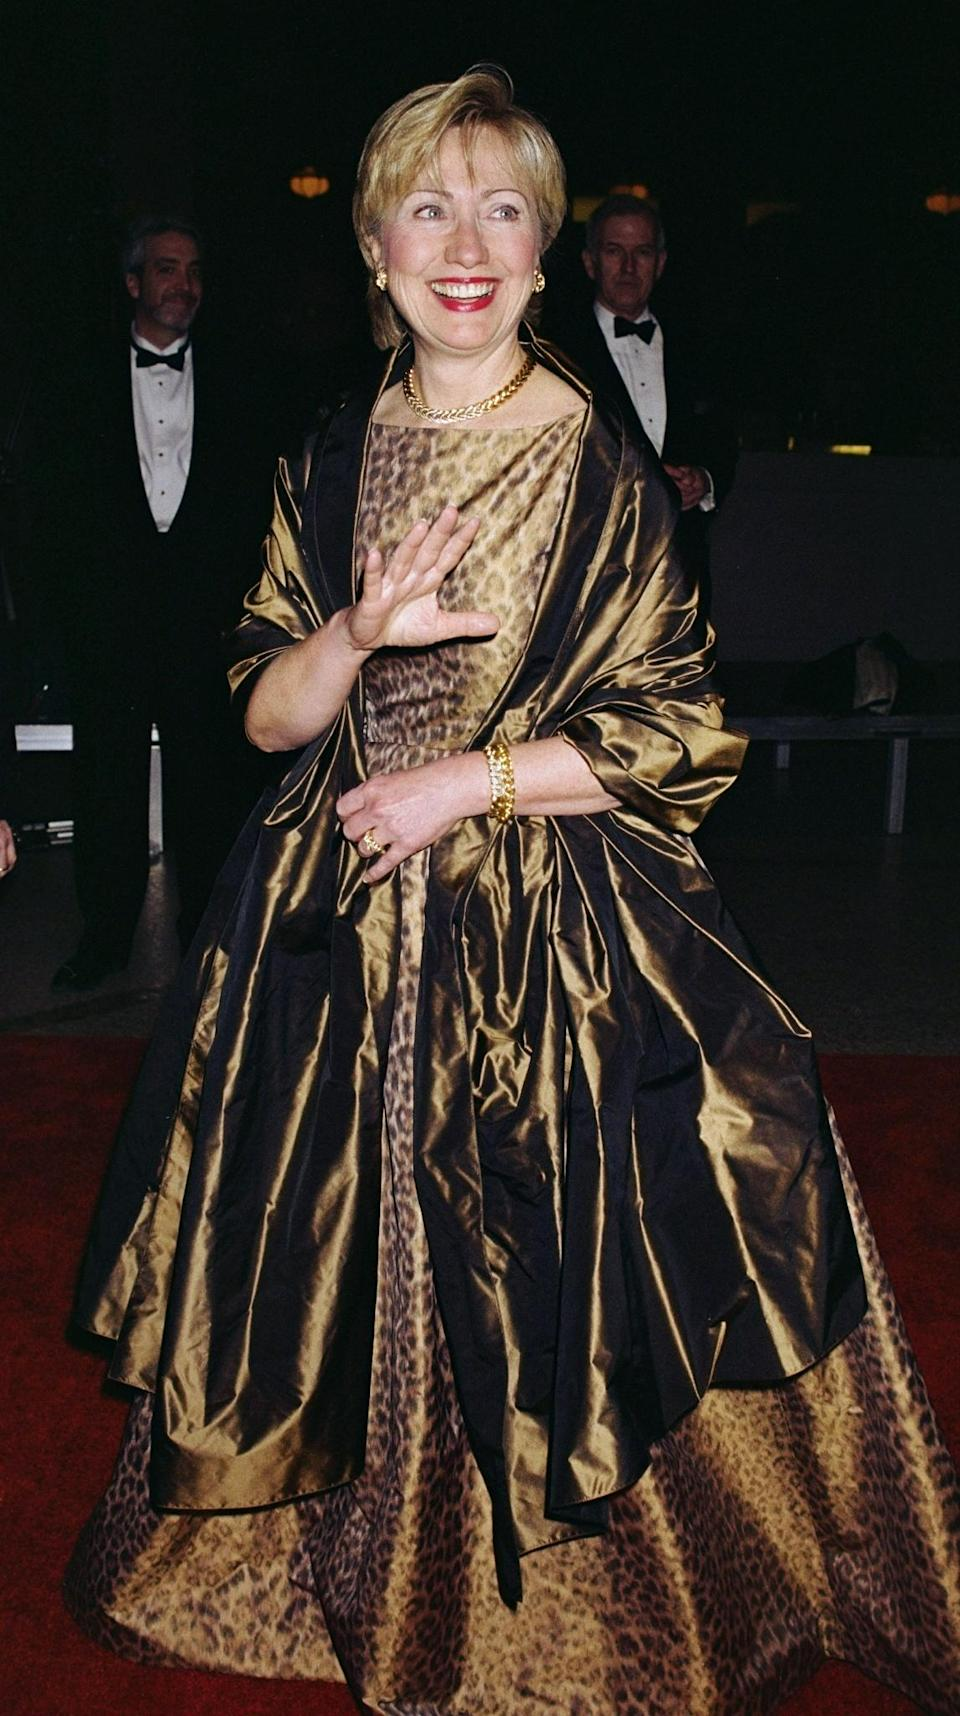 <p>Clinton in leopard skin did not win the popular vote. <i>(Photo via Getty Images)</i> </p>